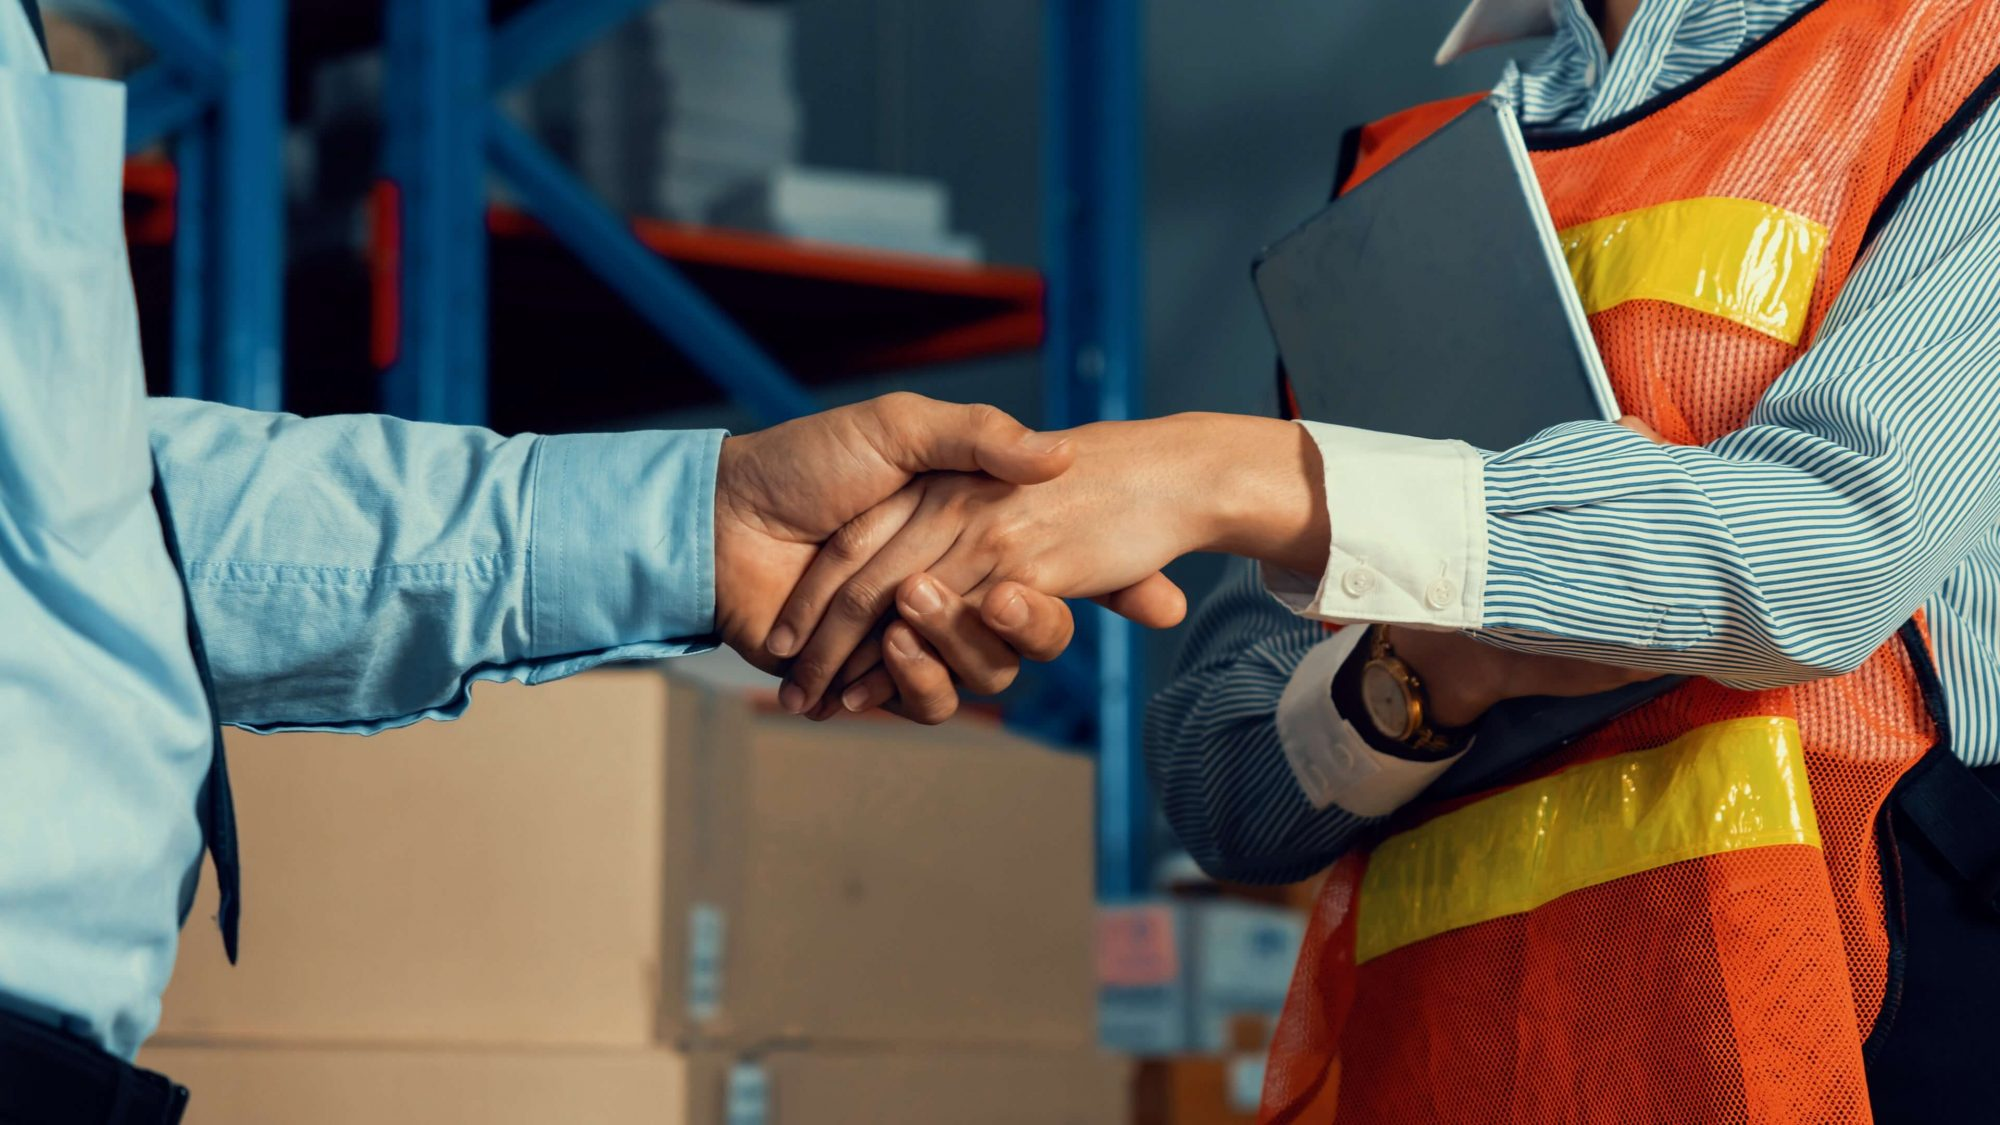 man in tie shakes hands with woman in woman in orange vest in supply room